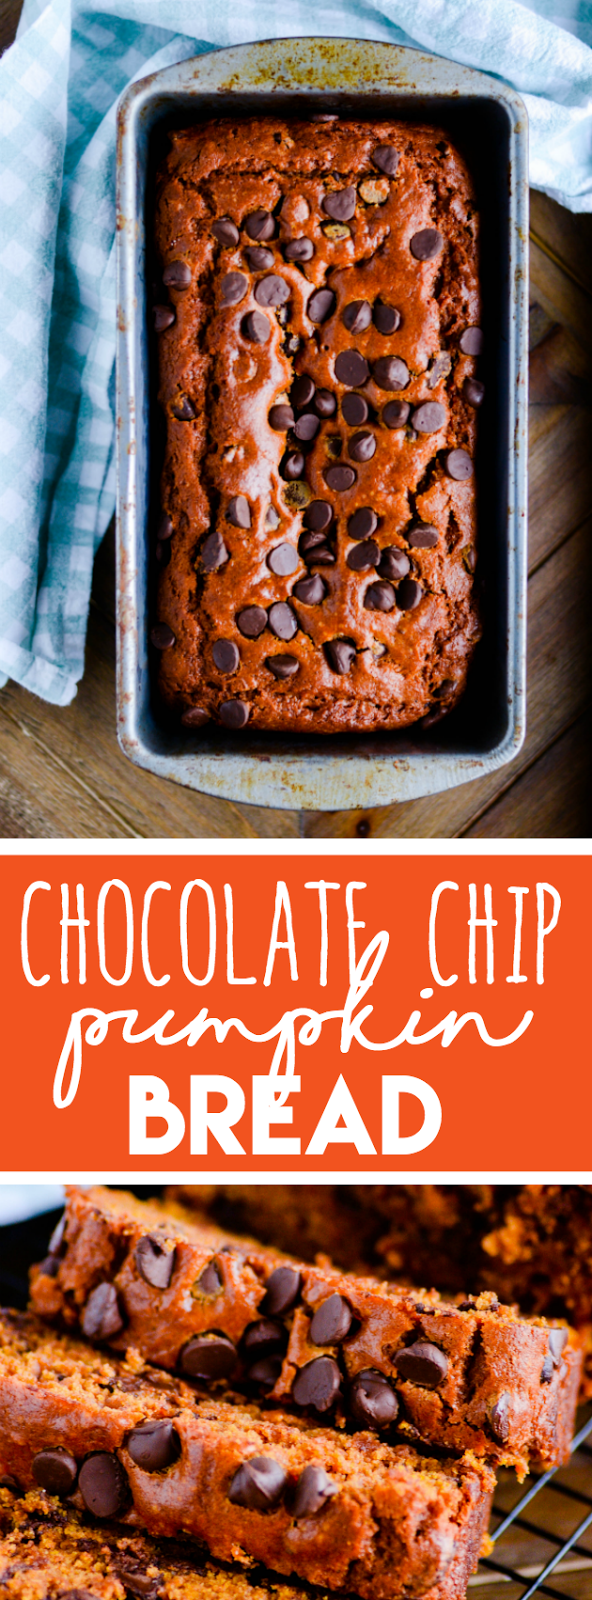 If you love pumpkin bread, this is the recipe you've been searching for. Moist, perfectly spiced, and just the right amount of chocolate chips!